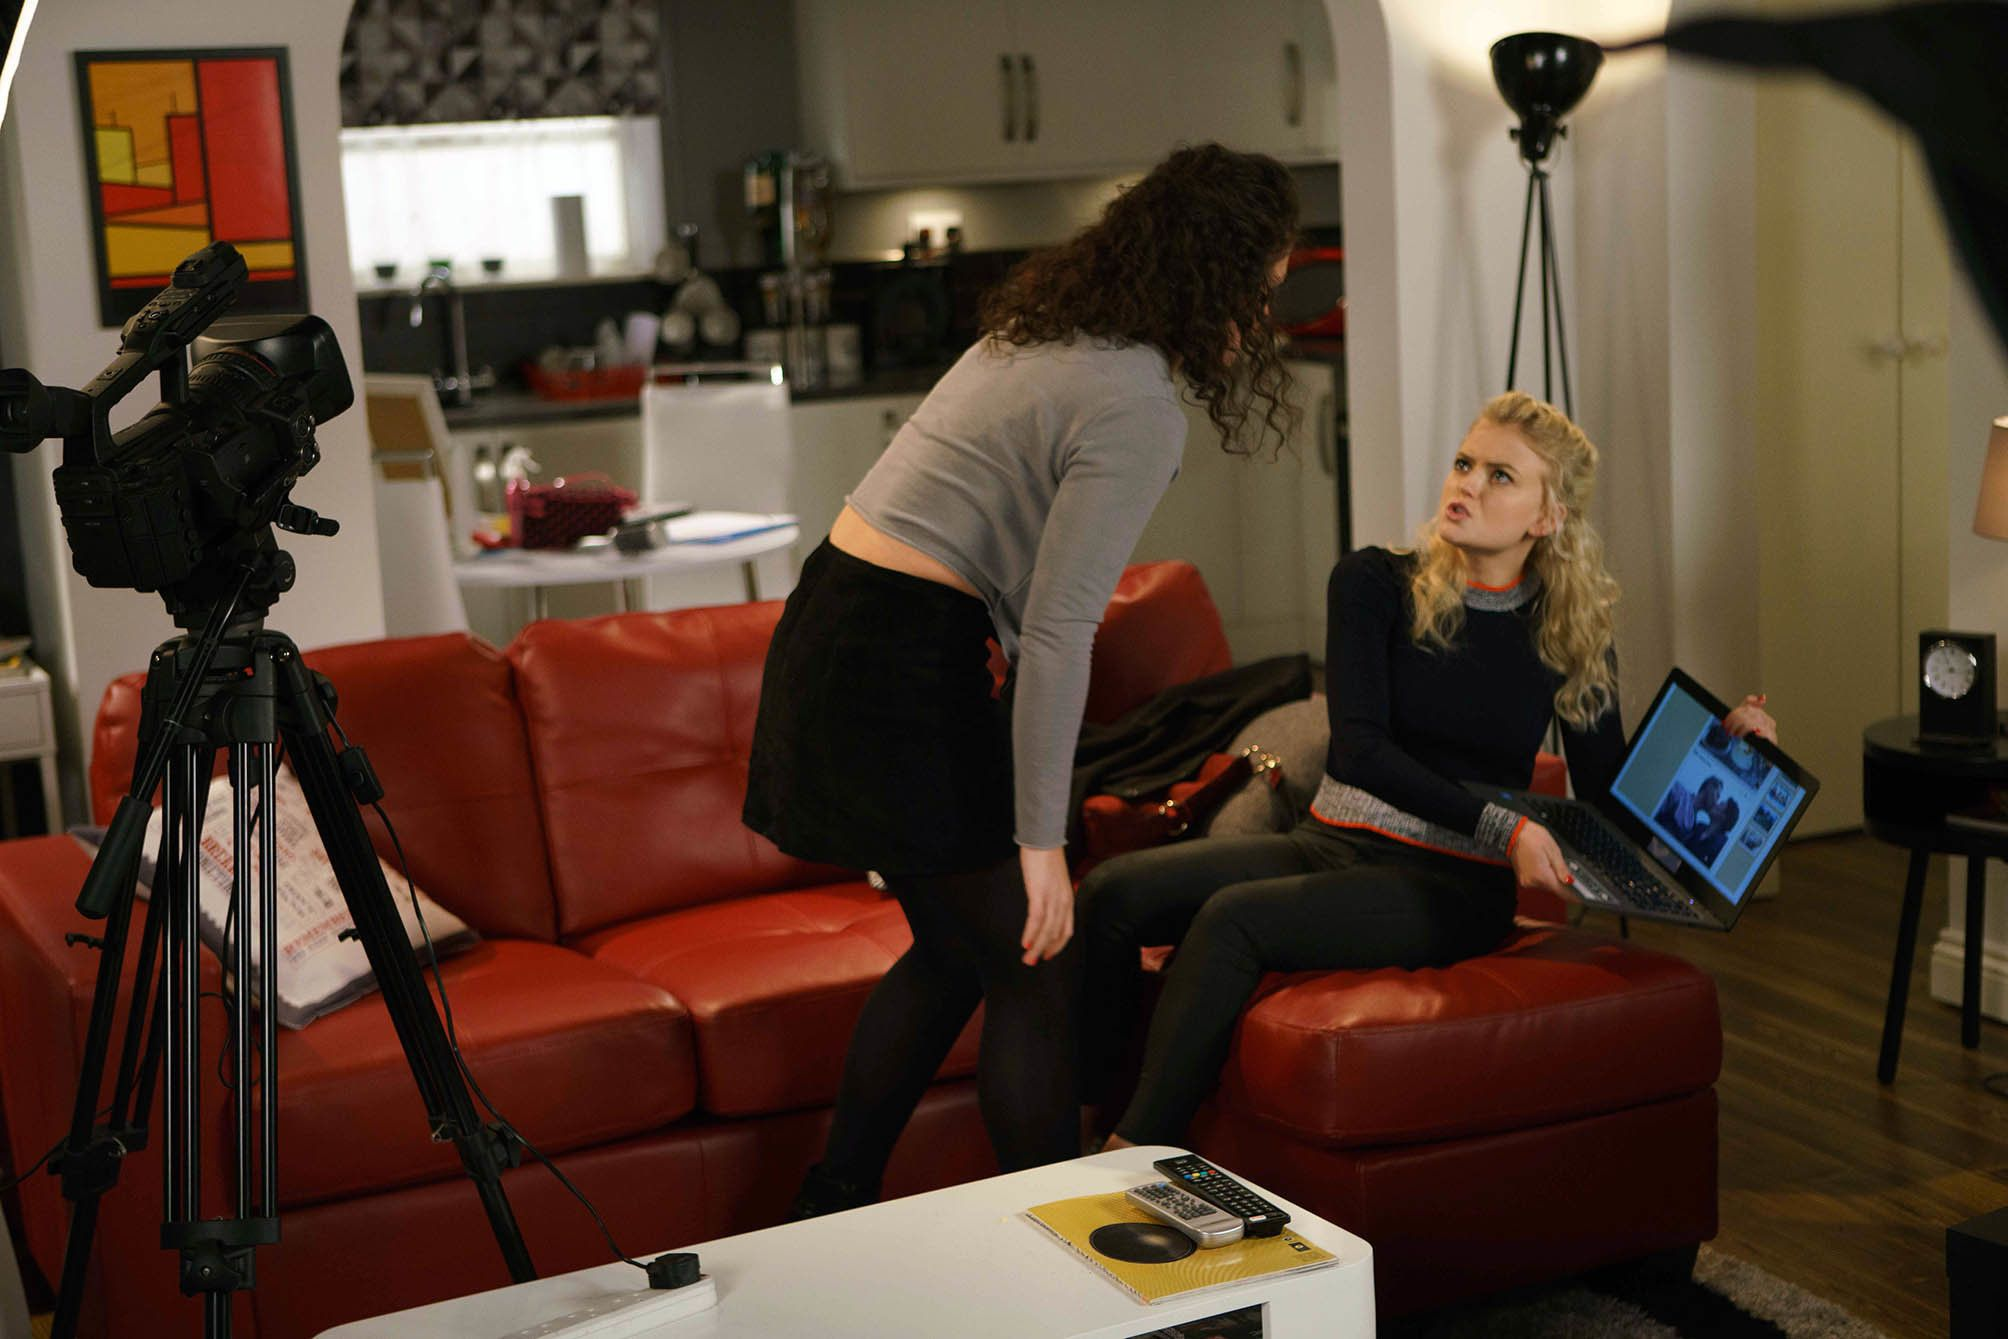 'Coronation Street' Spoiler! Is Bethany Platt About To See Nathan In A Different